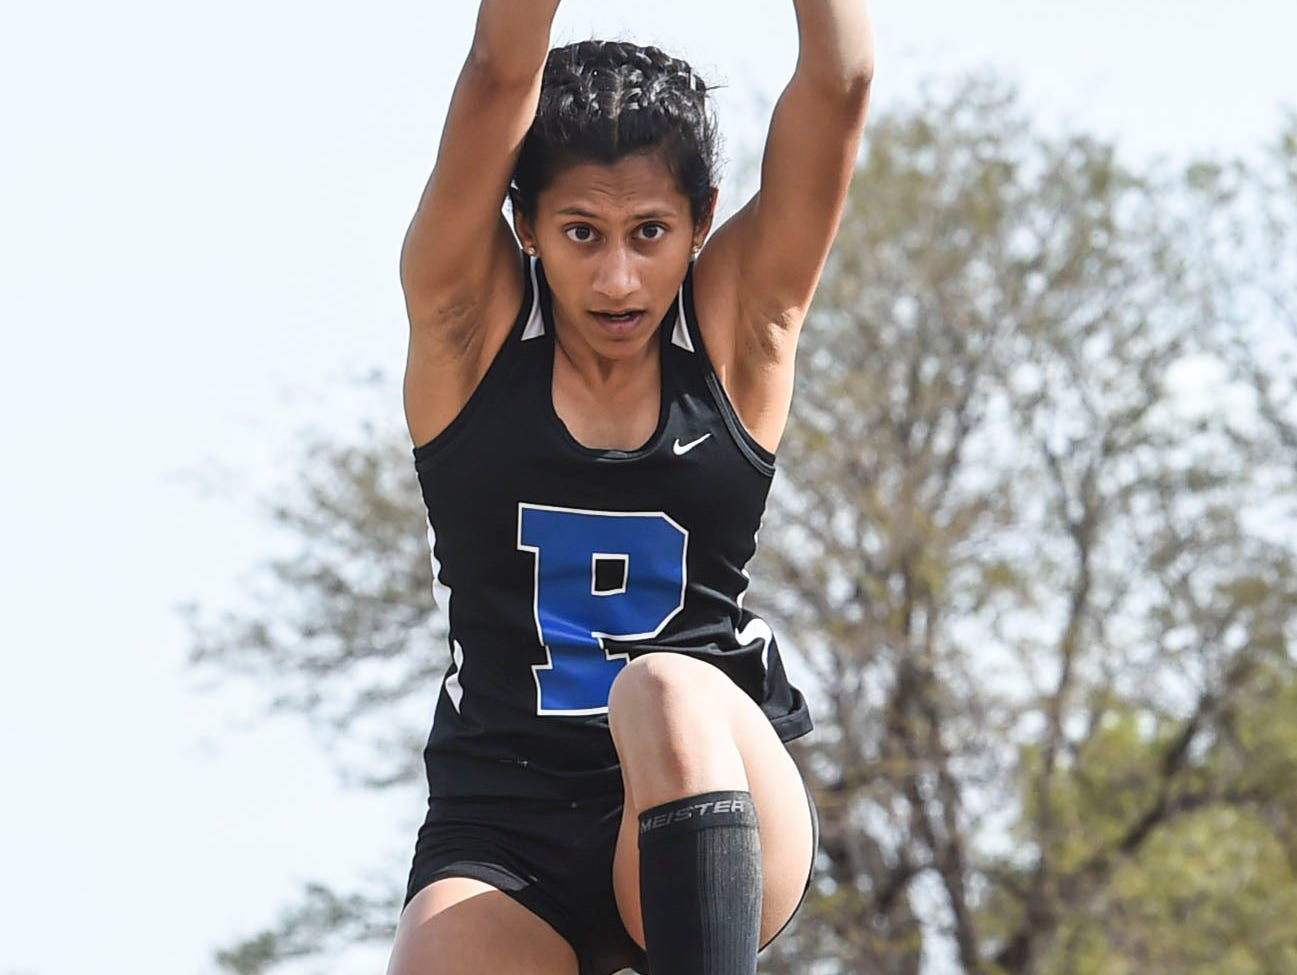 Poudre's Tarah Vijayasarathy competes in the triple jump event Thursday, May 14, 2015, at Jefferson County Stadium in Lakewood, CO.